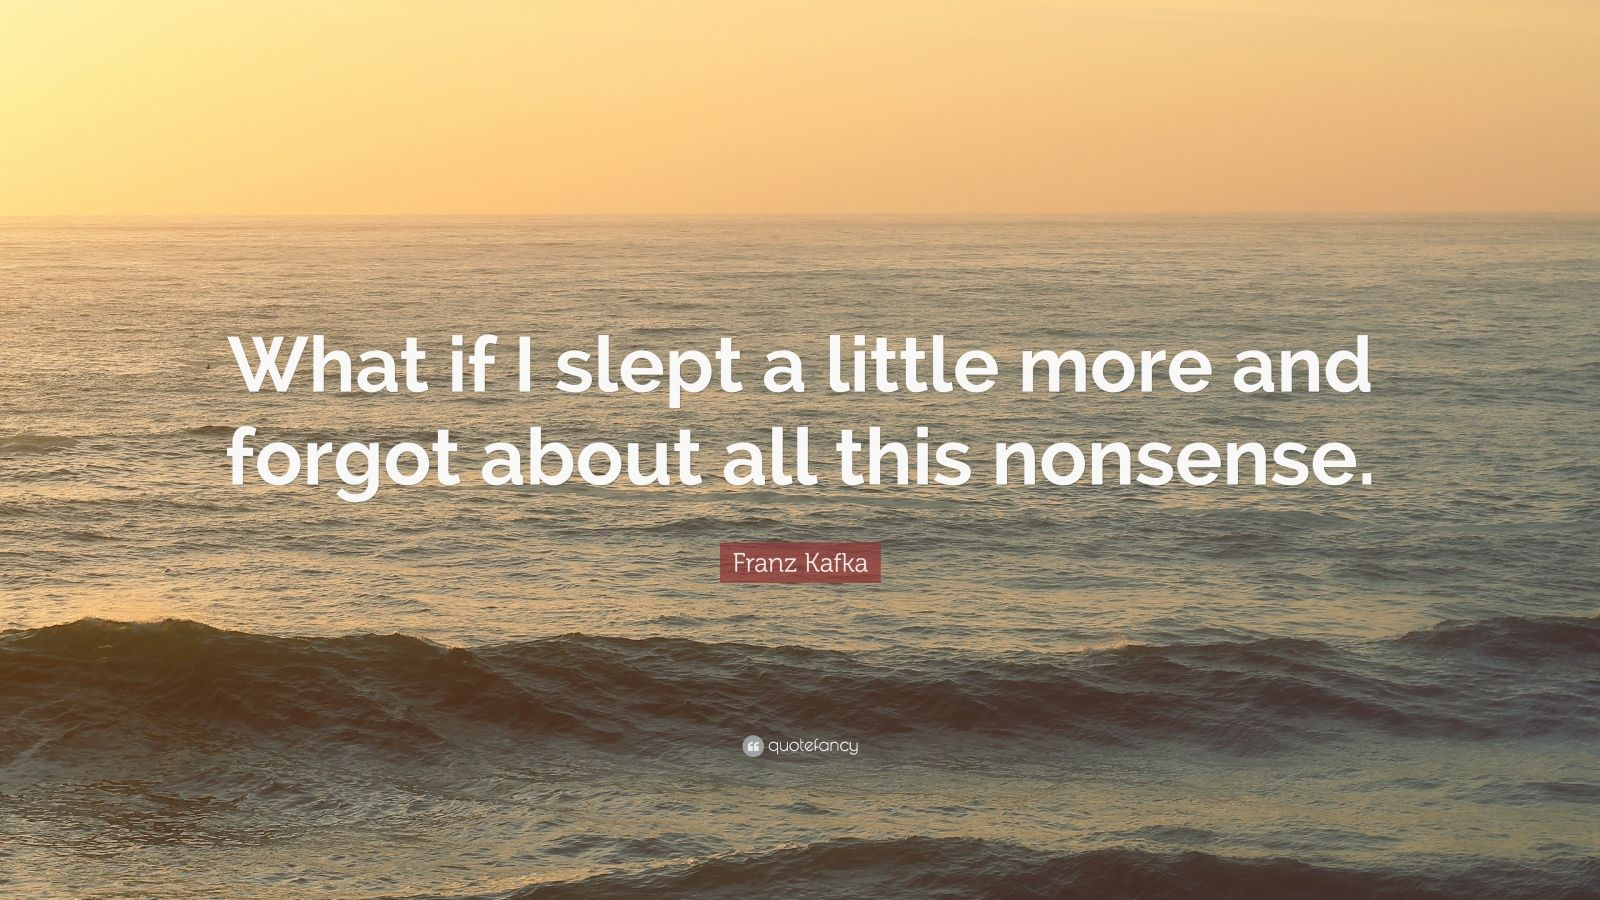 """Franz Kafka Quote: """"What if I slept a little more and forgot about all this nonsense."""""""